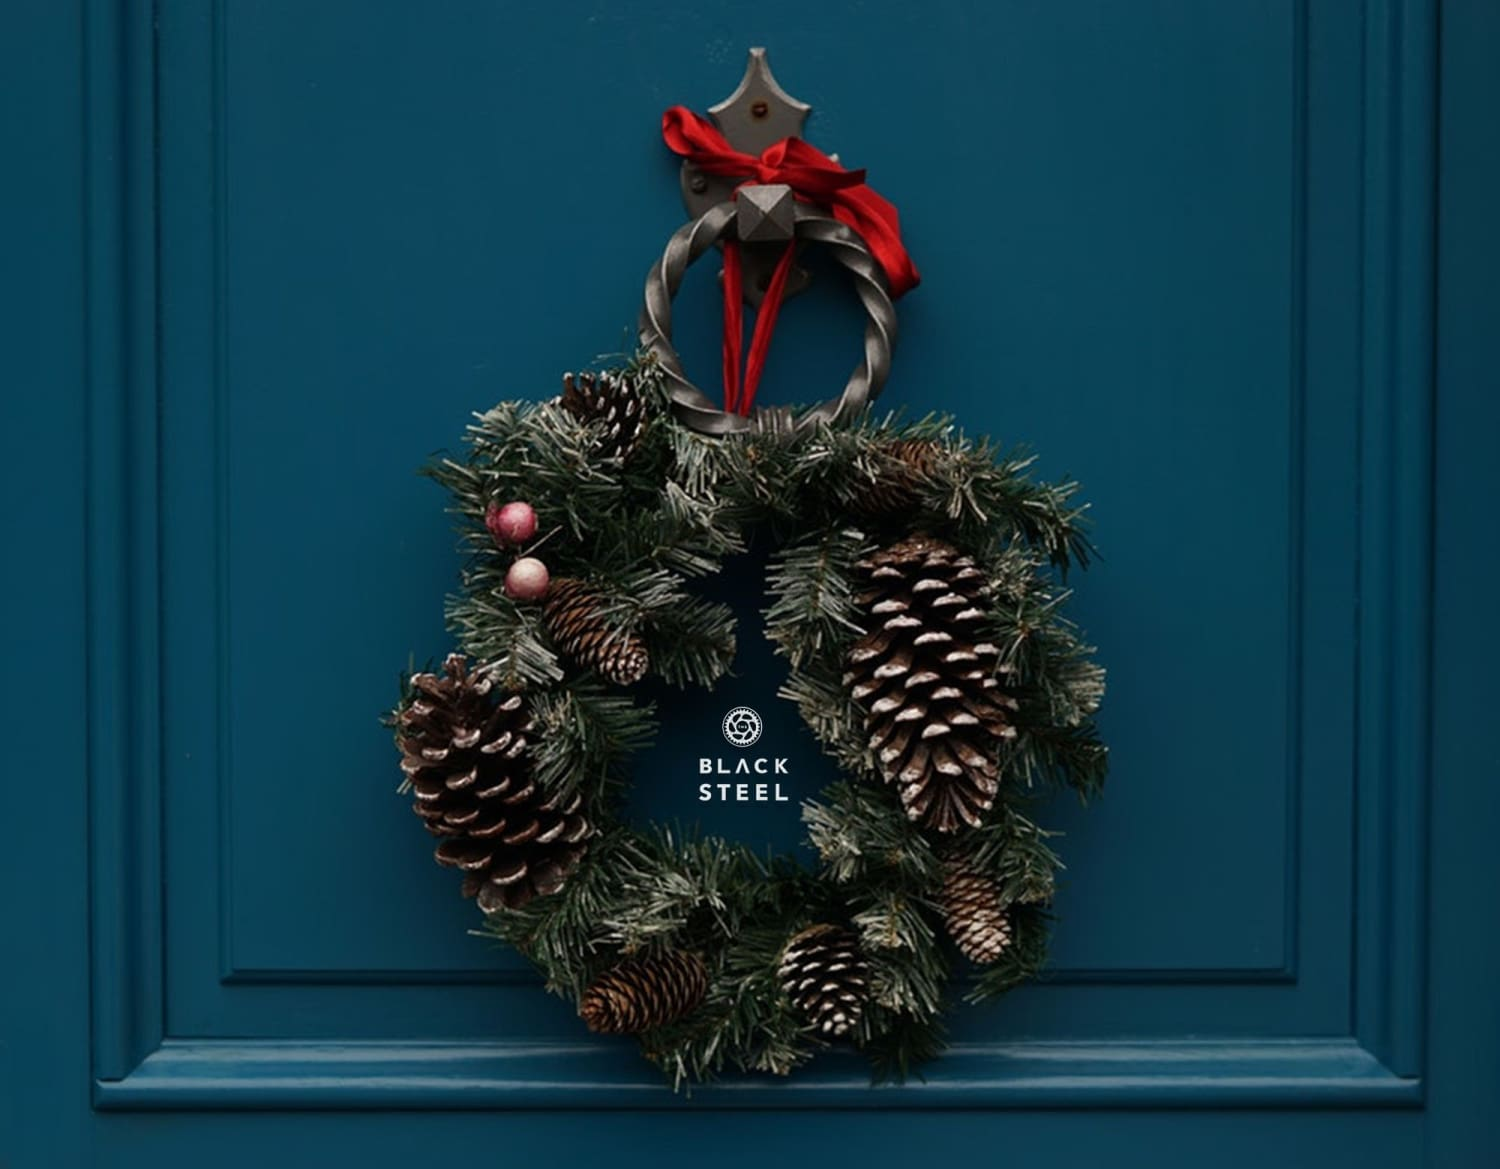 Spruce up your home with these quirky and unconventional Christmas decor ideas!